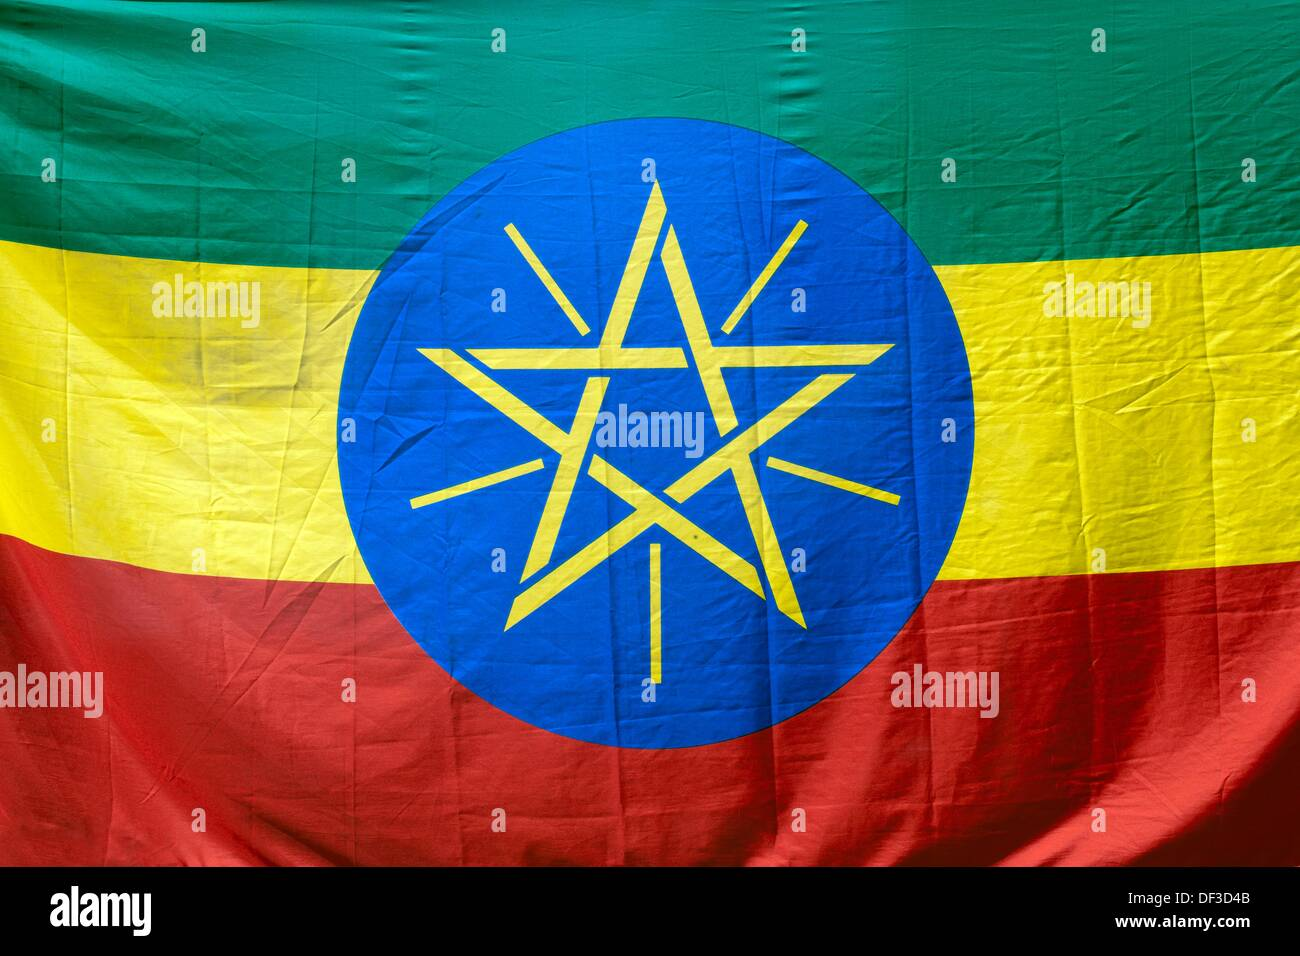 national flag of ethiopia with its green, yellow and red colors and